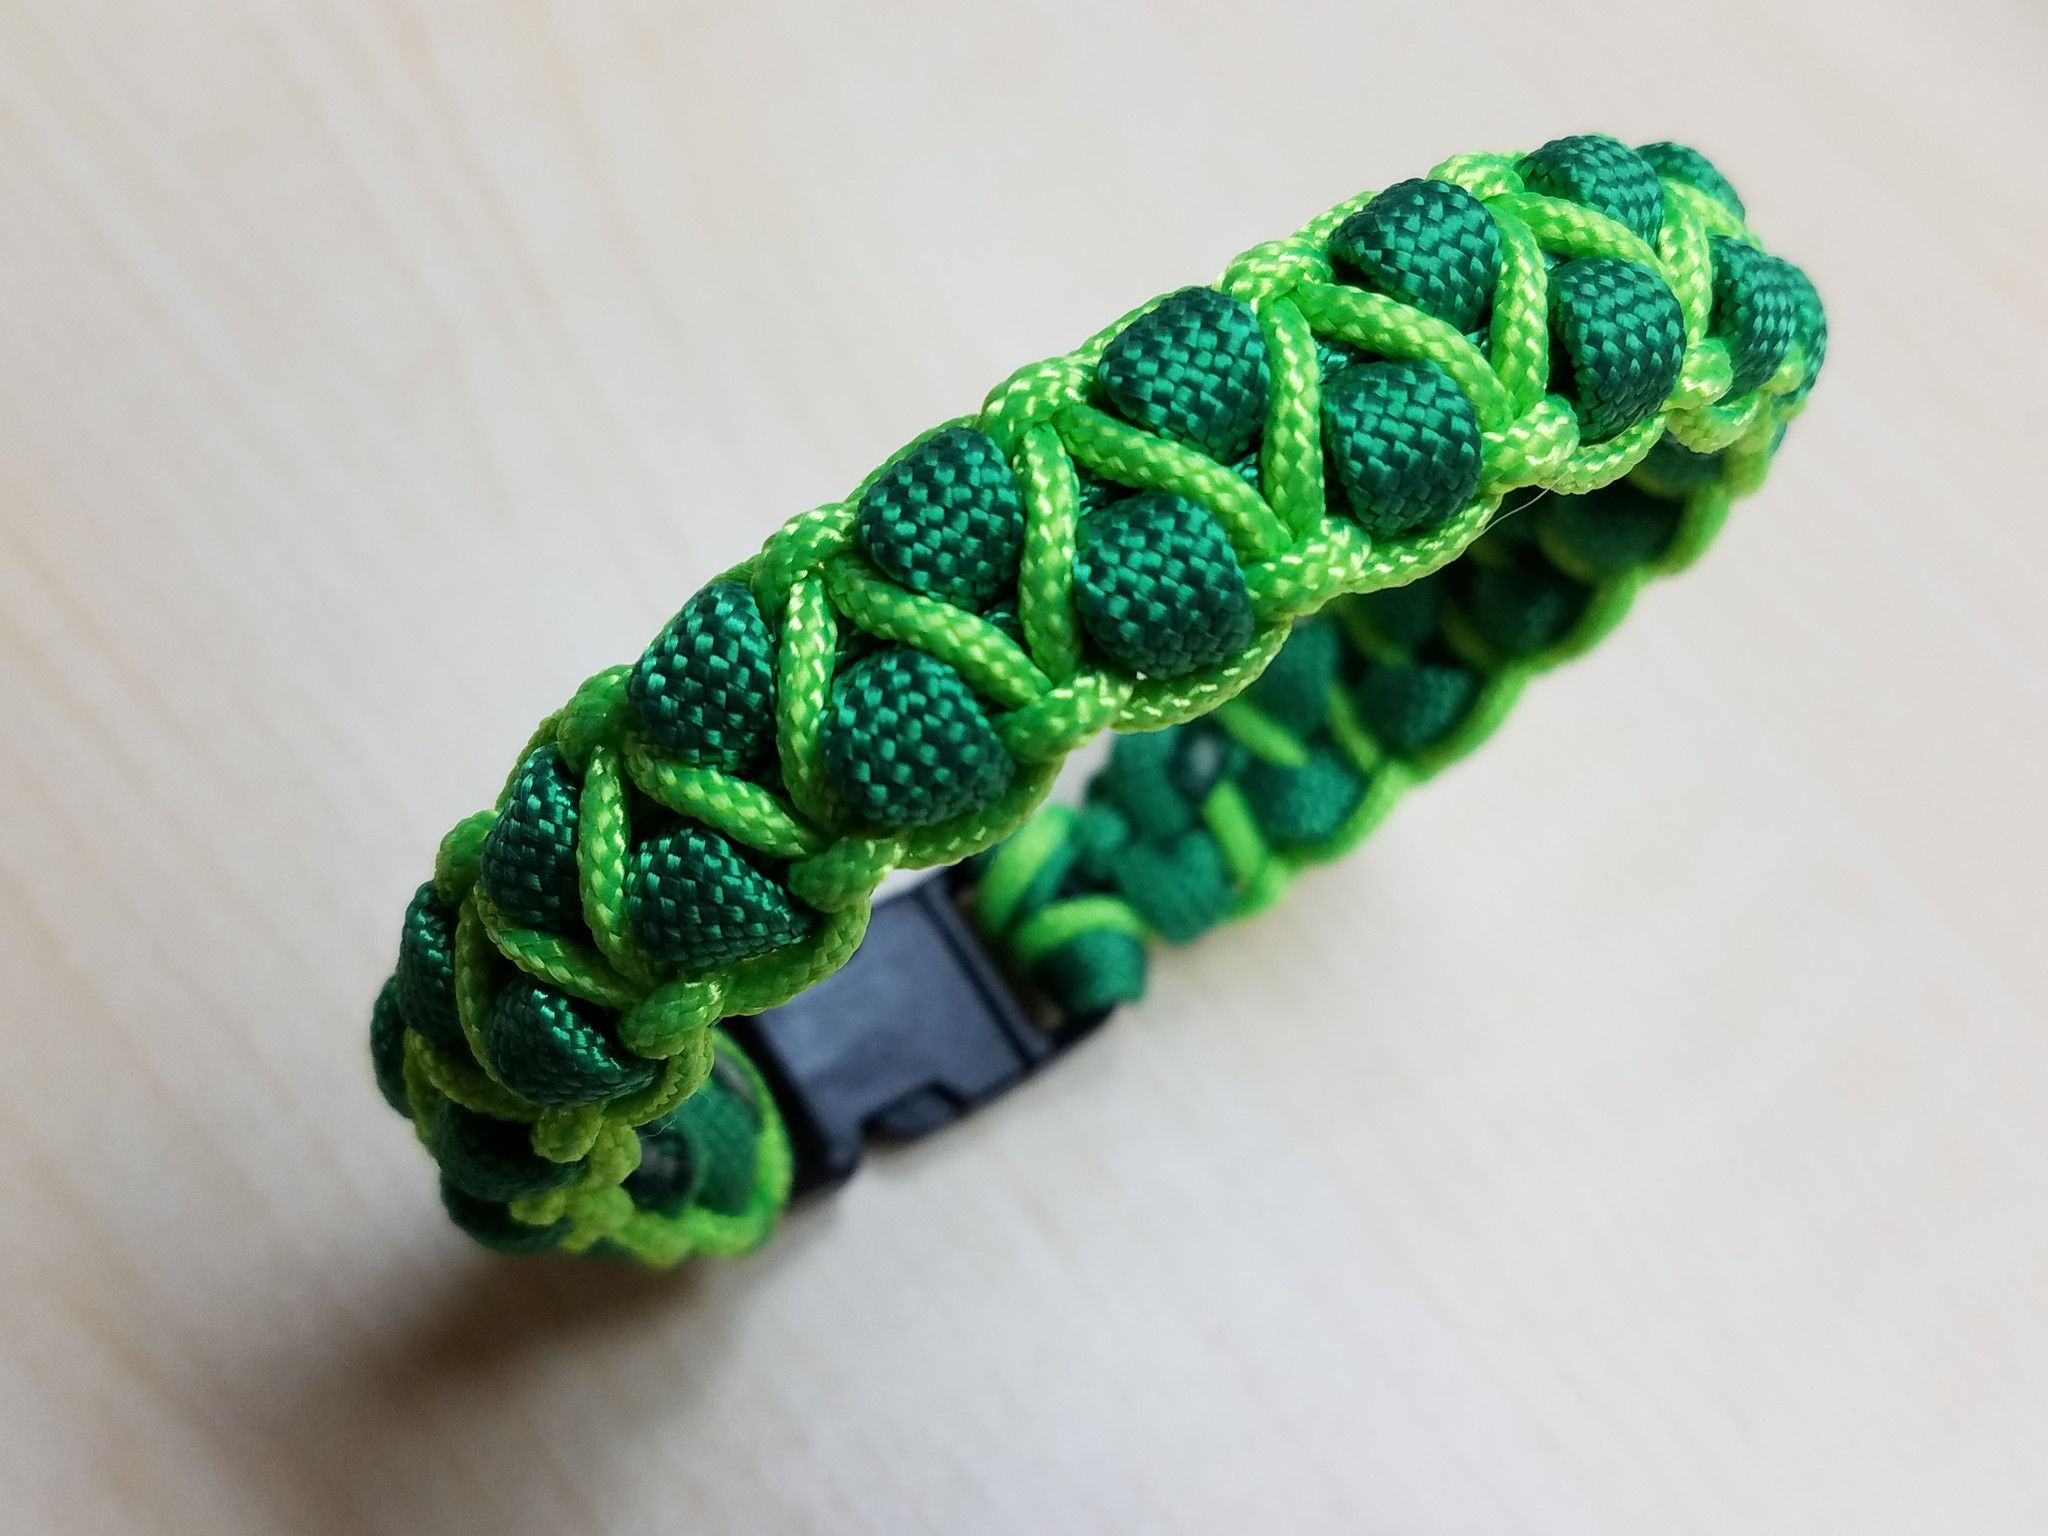 Pin On Paracord And Bungee Cord